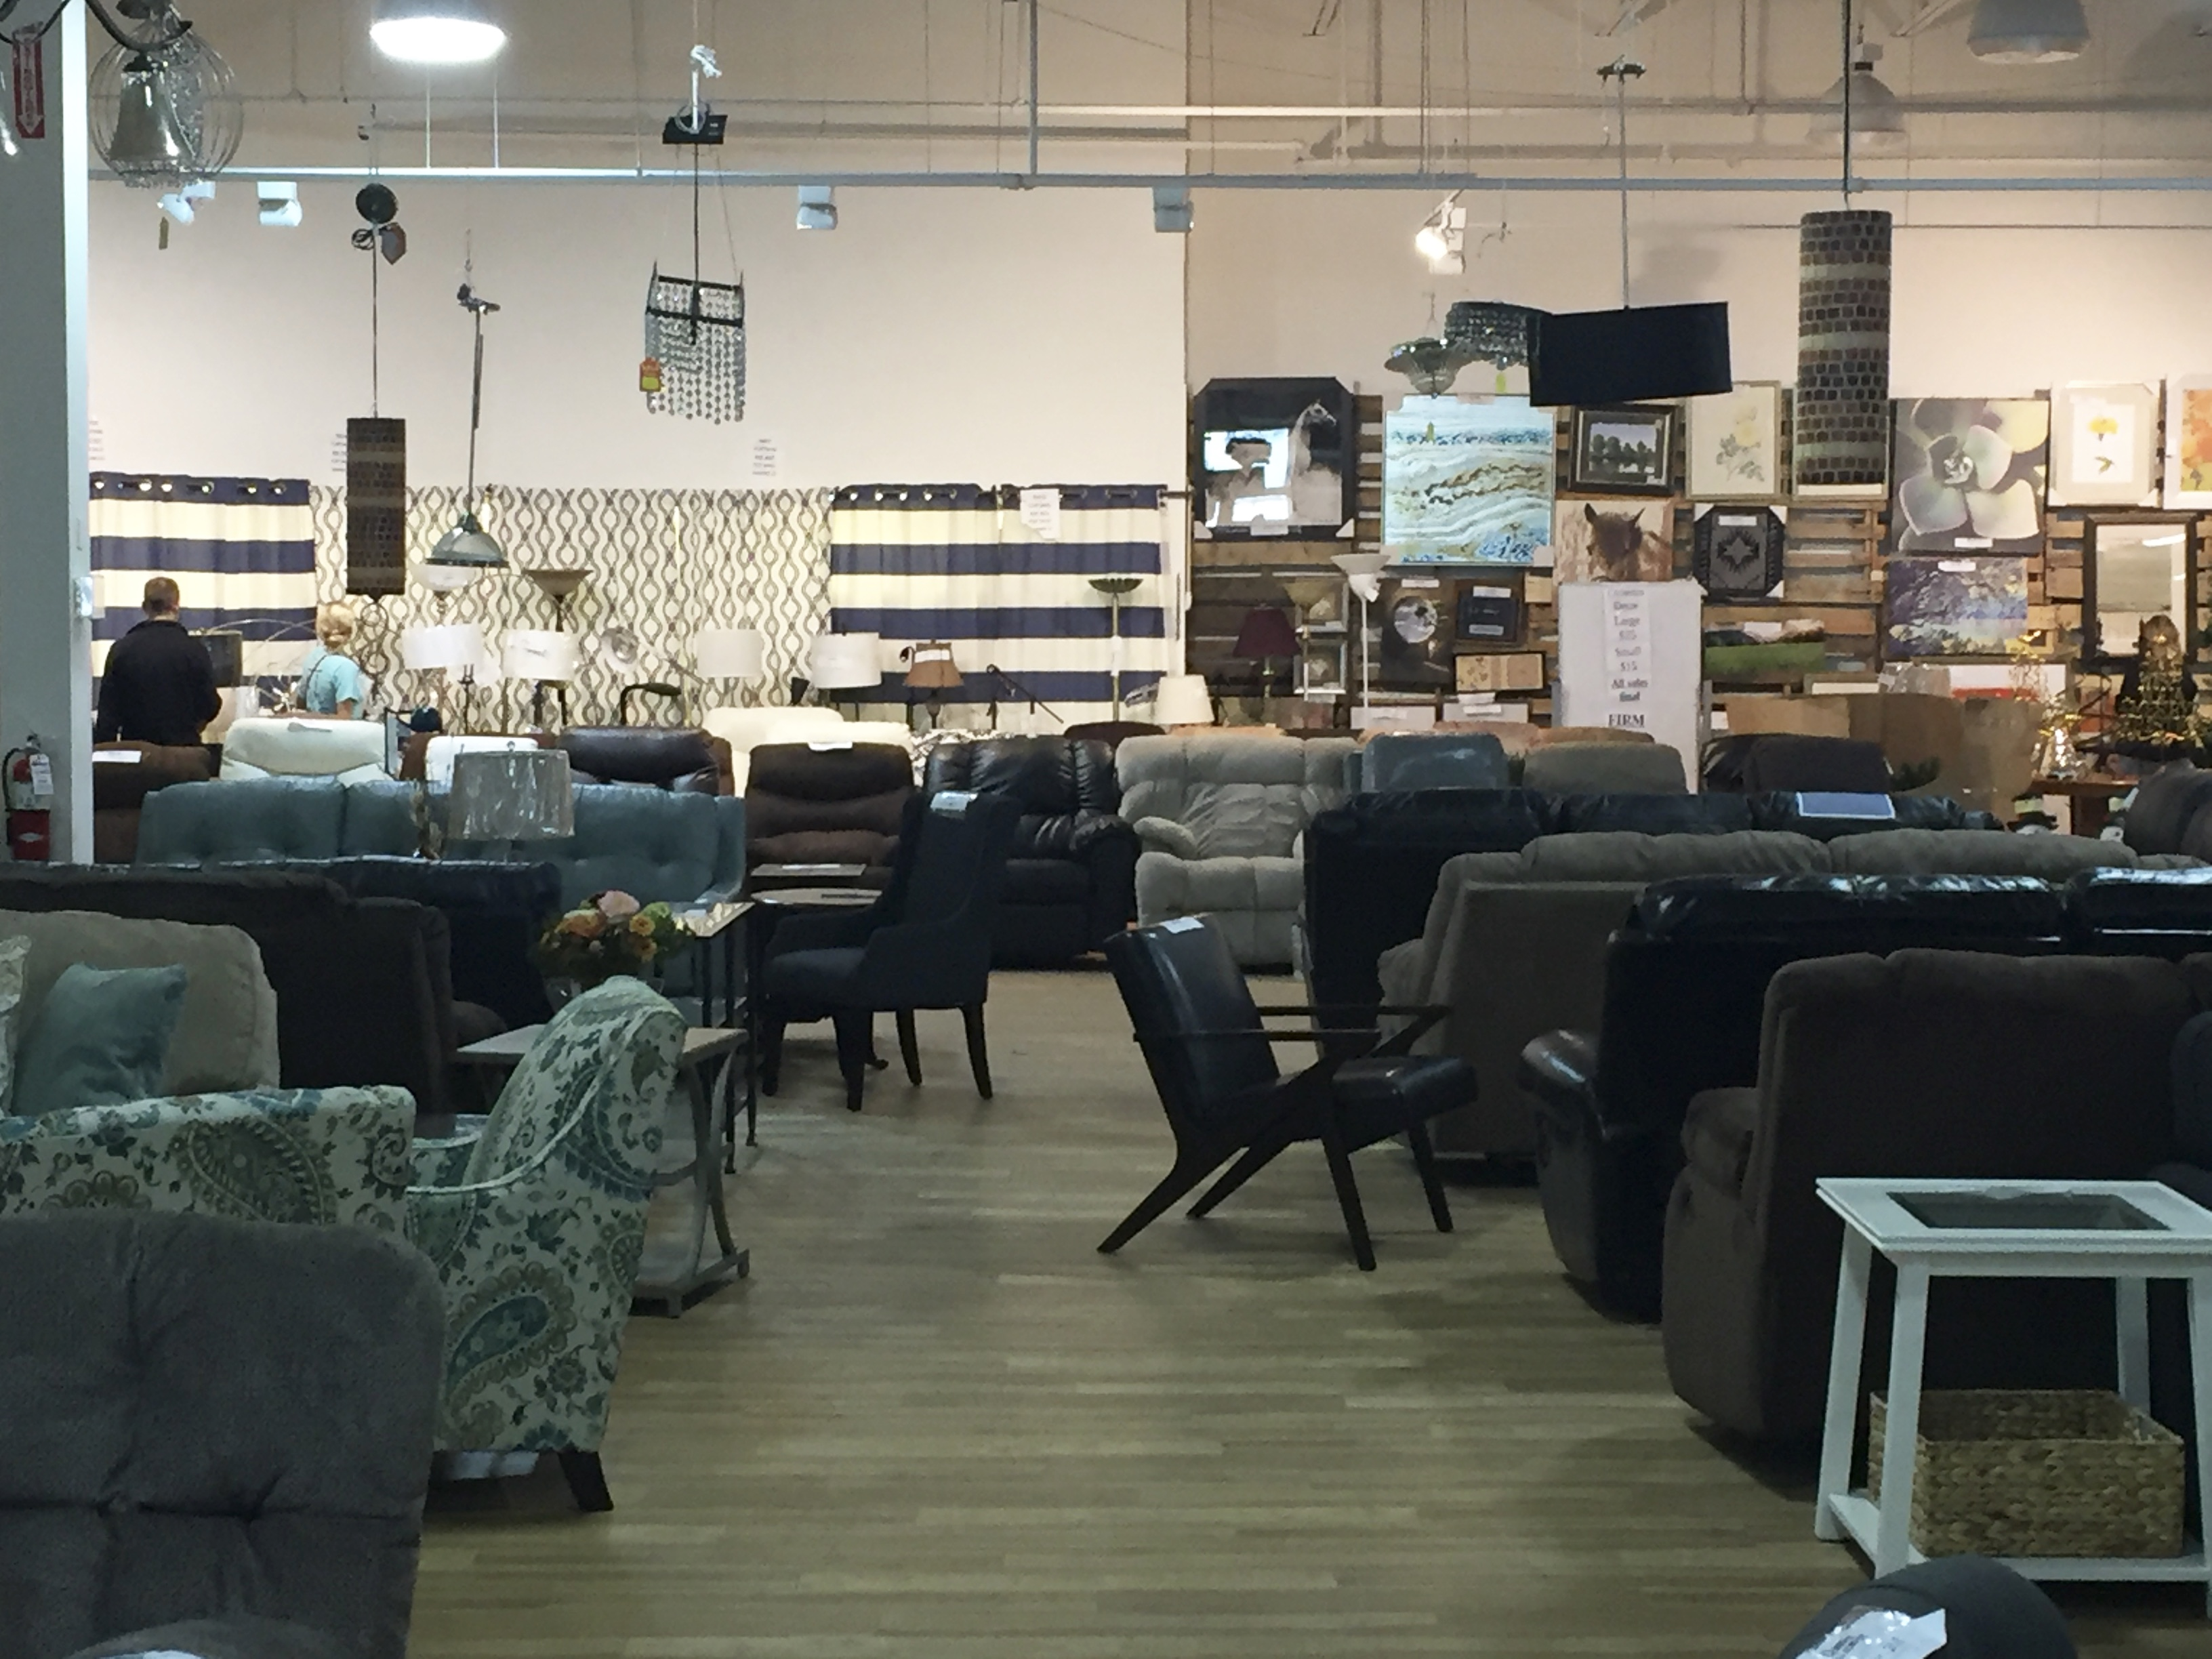 Bargains And Buyouts Cincinnati, OH  Furniture Store  Bargain Shopping   Liquidation Sales